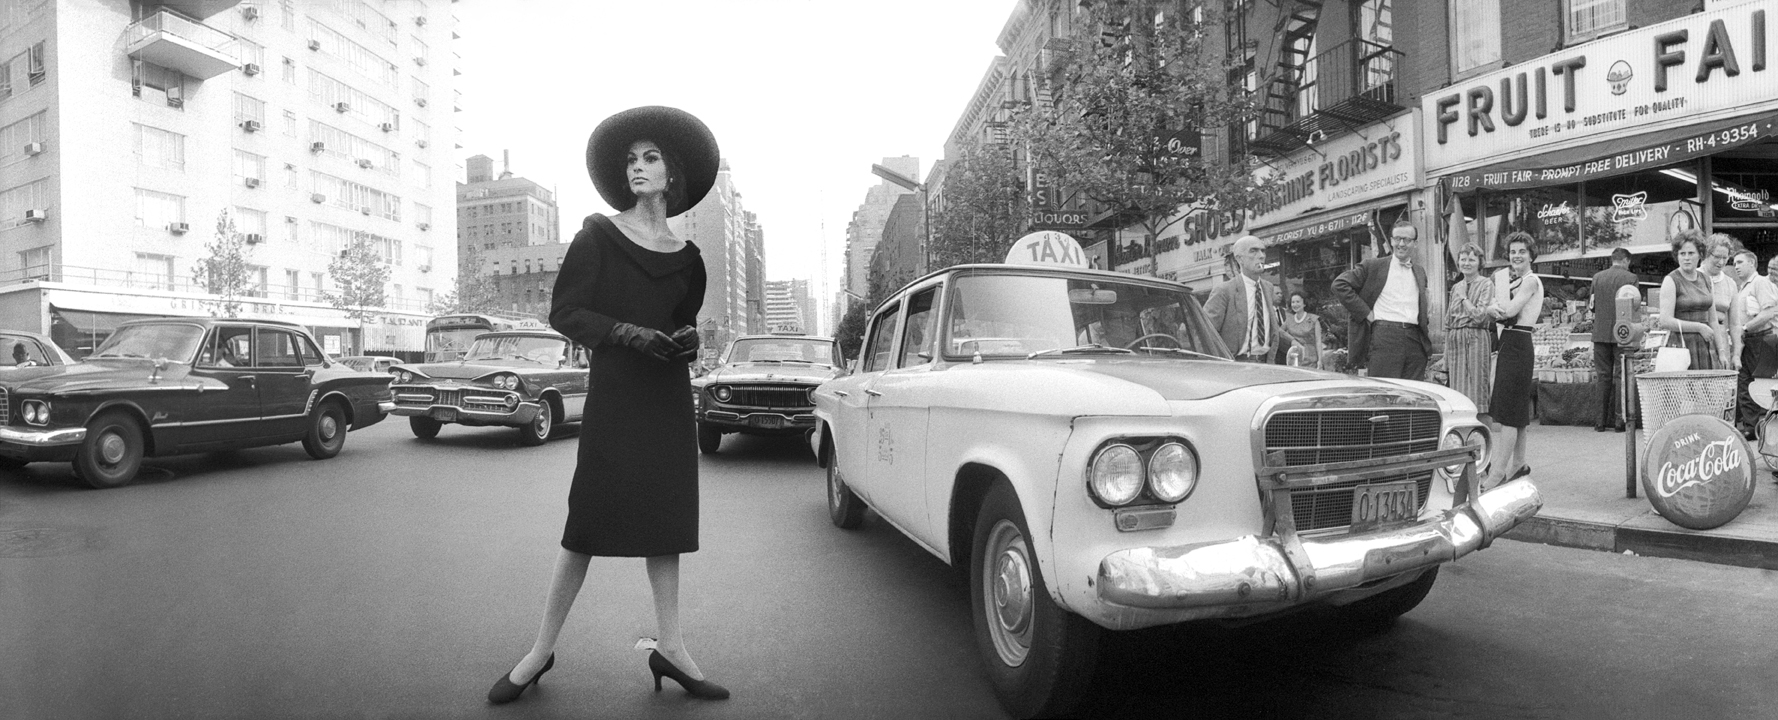 New York City street scene © Norman Parkinson - Eduard Planting Gallery